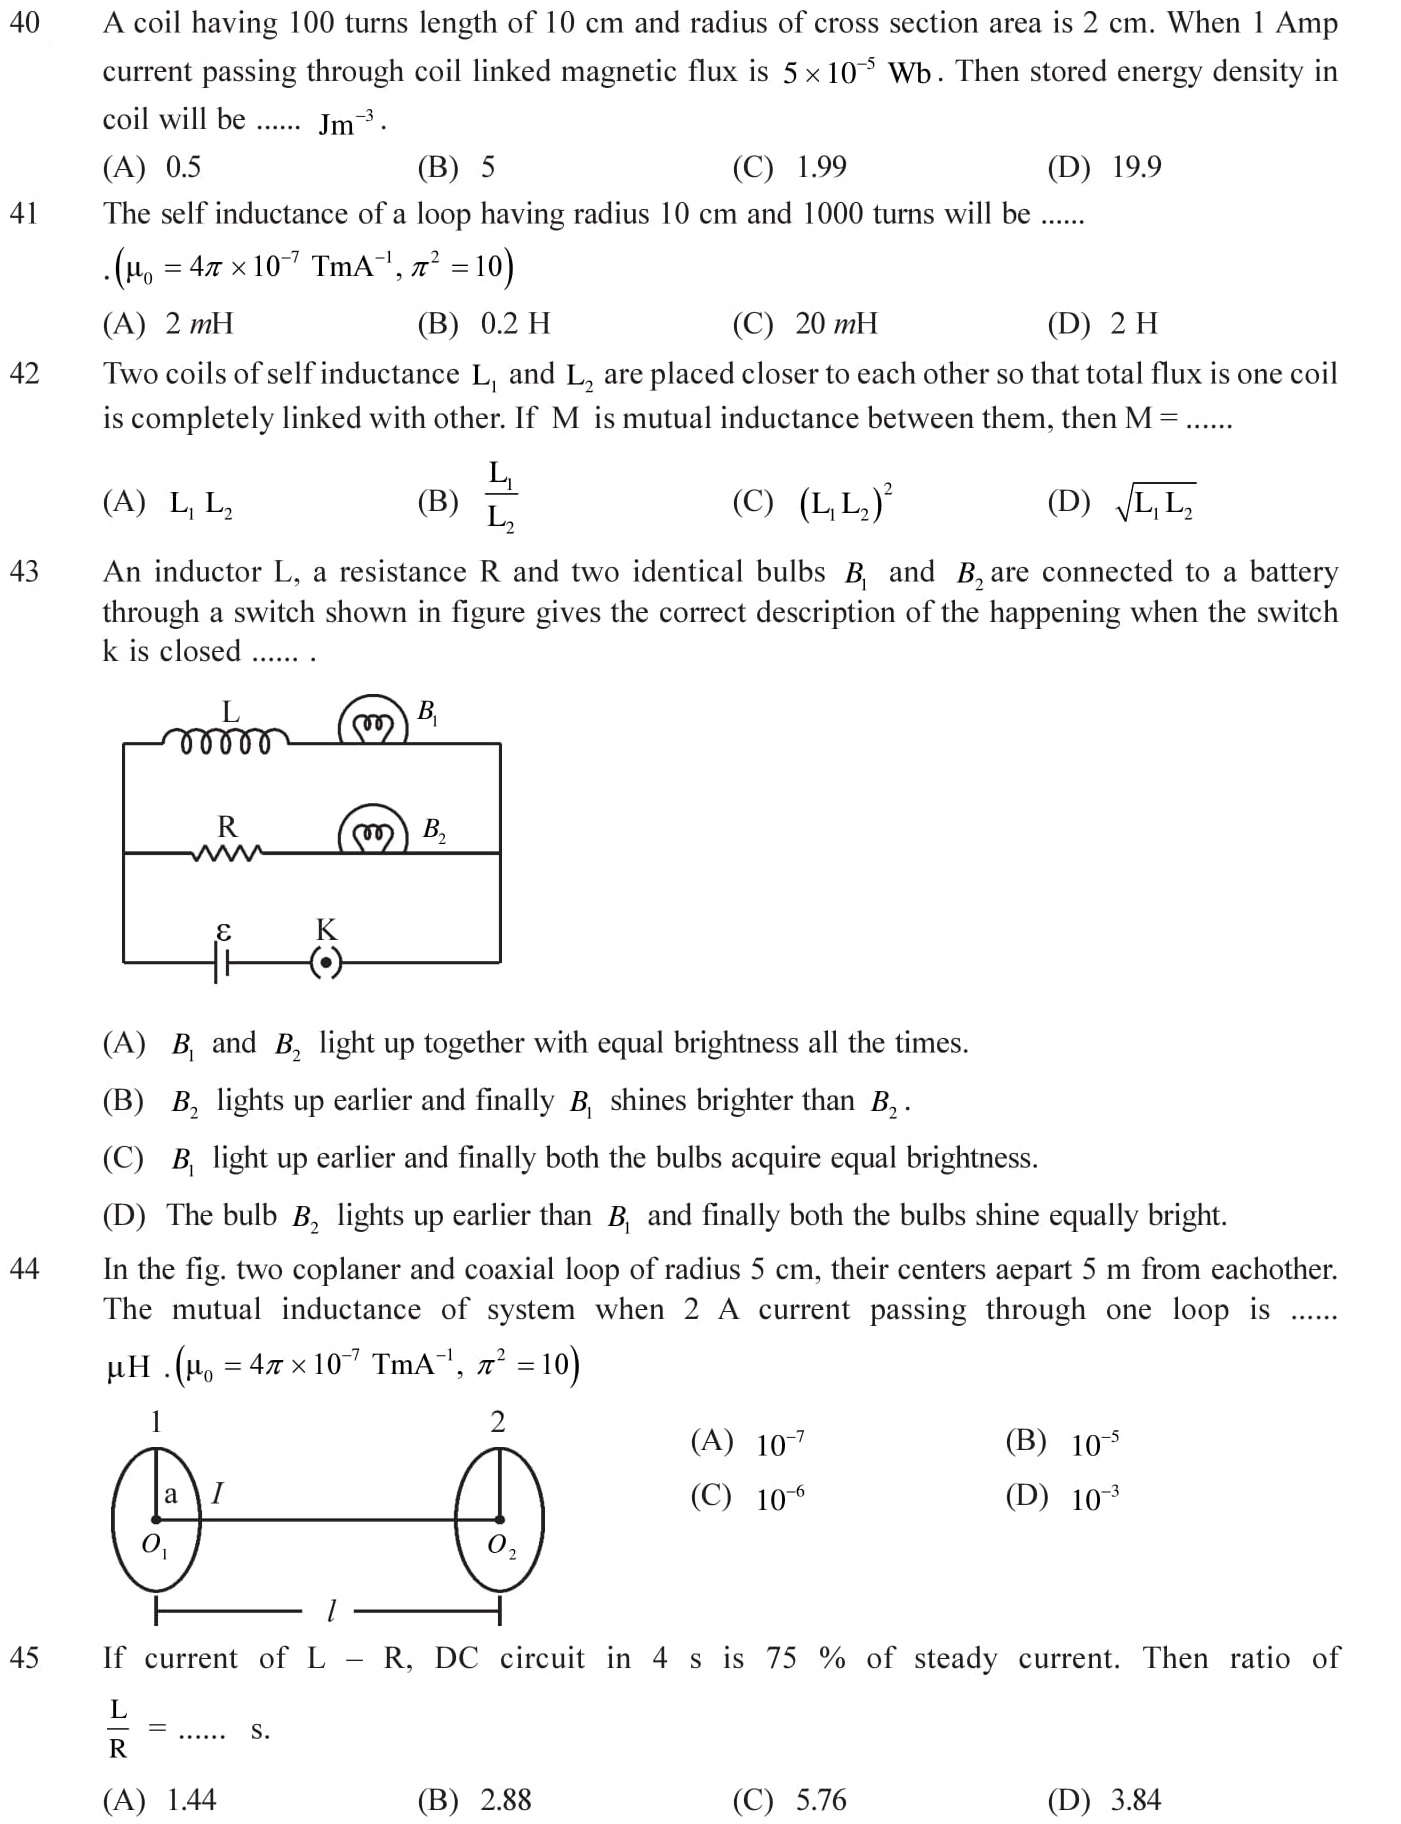 Questions for NEET, JEE Mains on Electromagnetic Inductions Topic 10